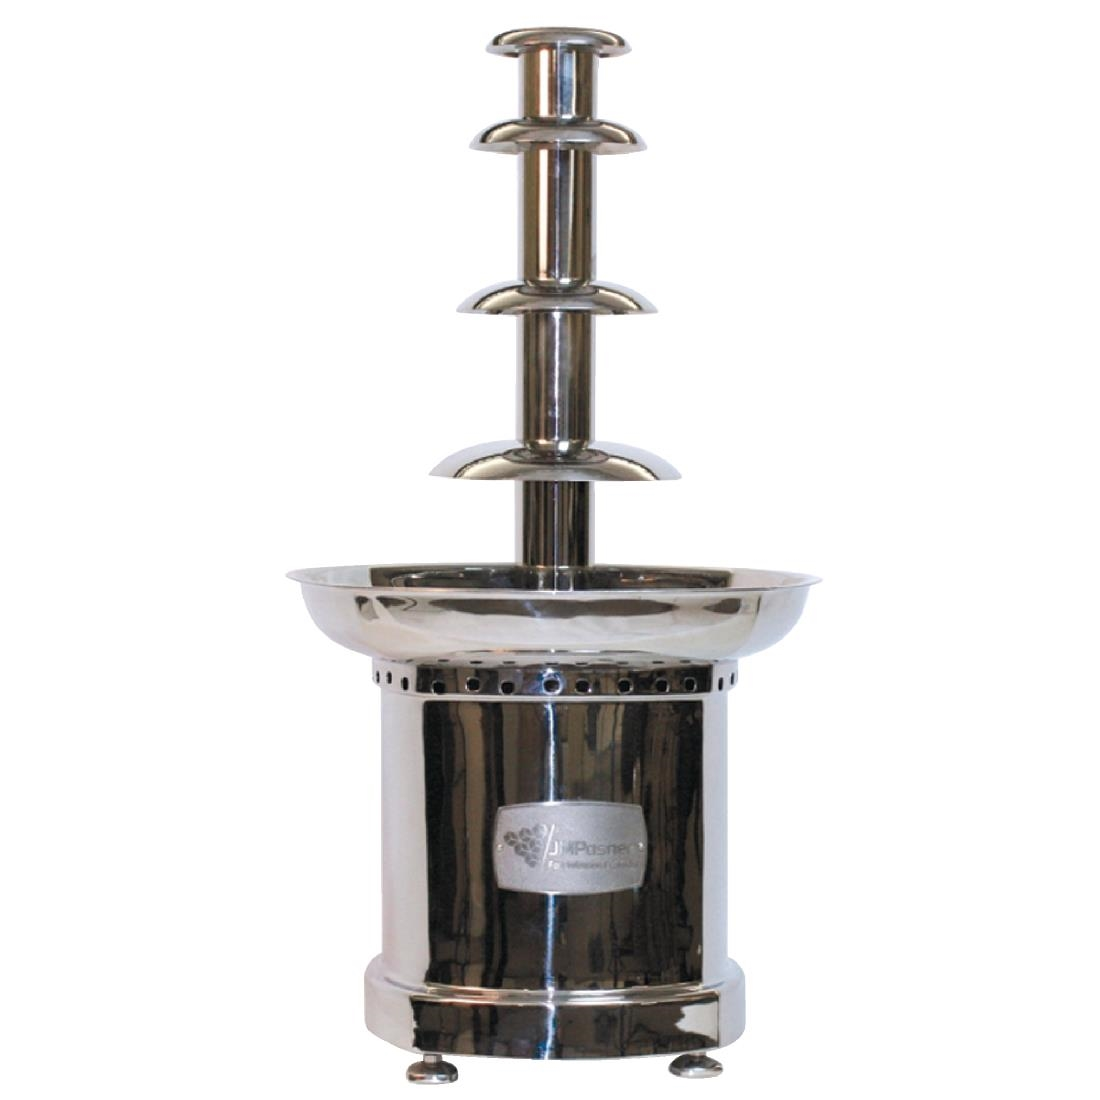 Click to view product details and reviews for Jm Posner Chocolate Fountain Sq2.